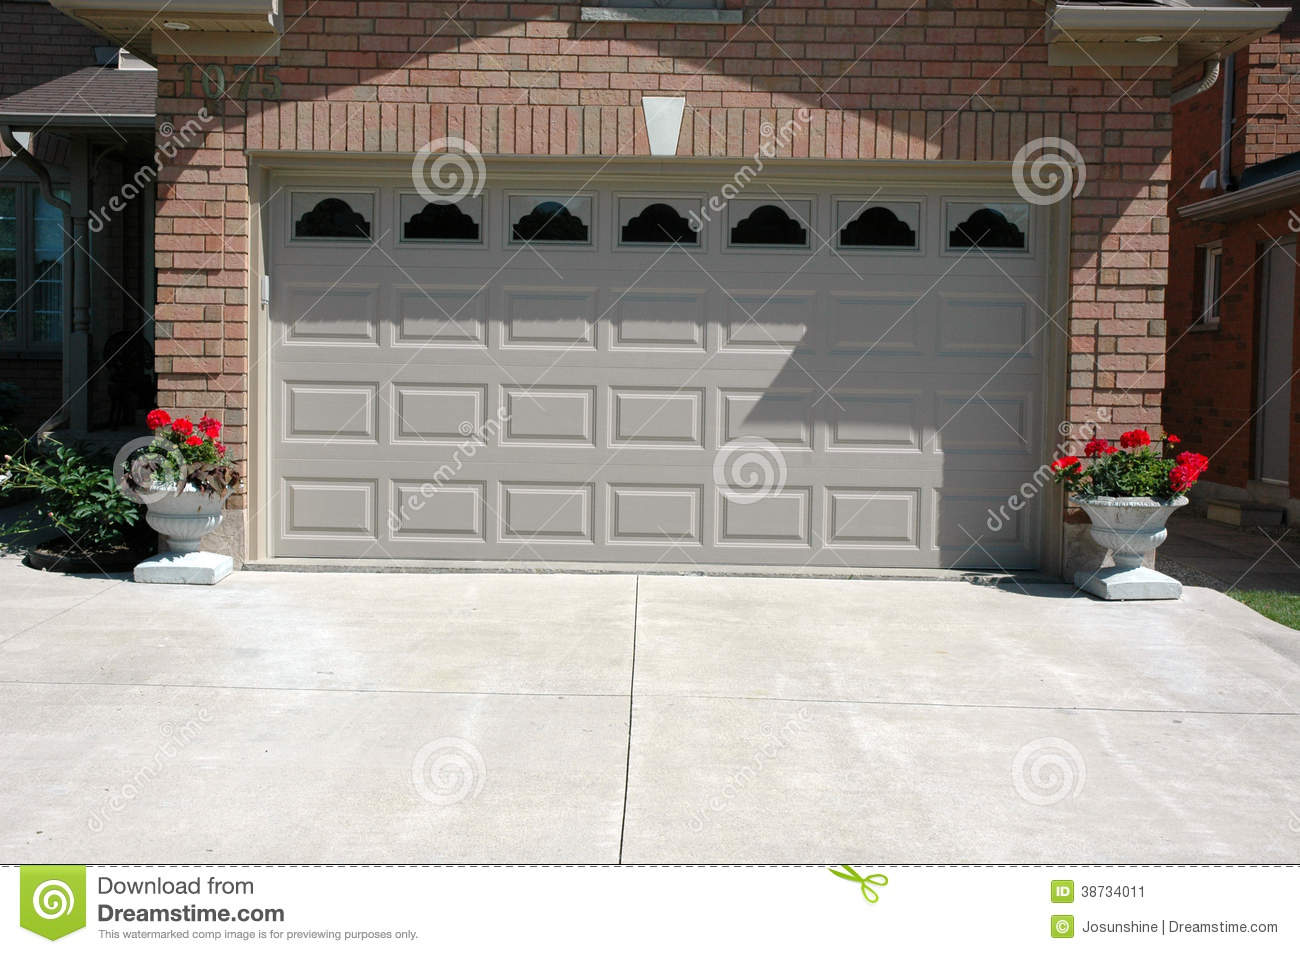 954 #82A328 Garage Door Double With Windows And Cement Driveway. wallpaper Double Garage Doors With Windows 38451300